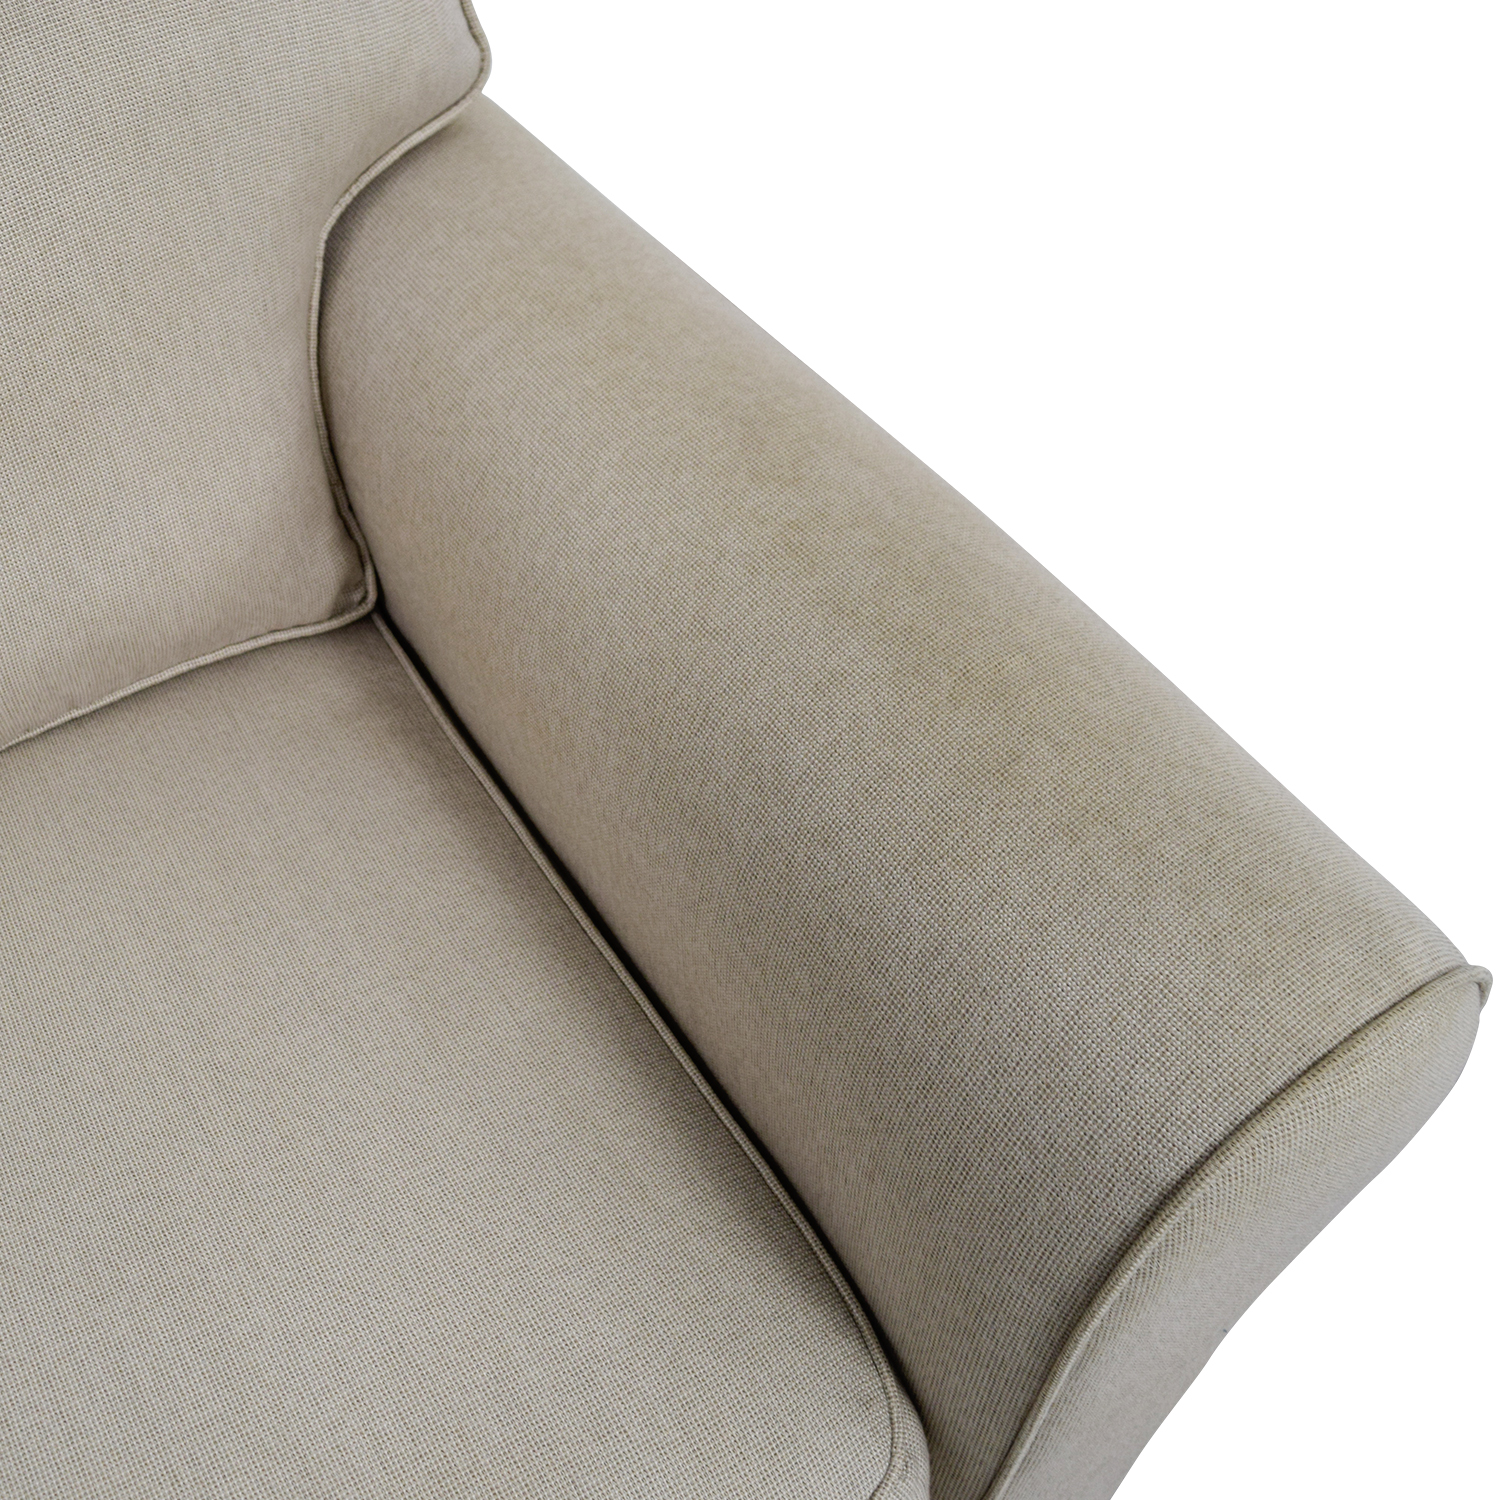 Raymour and Flanigan Langston Tan Couch sale